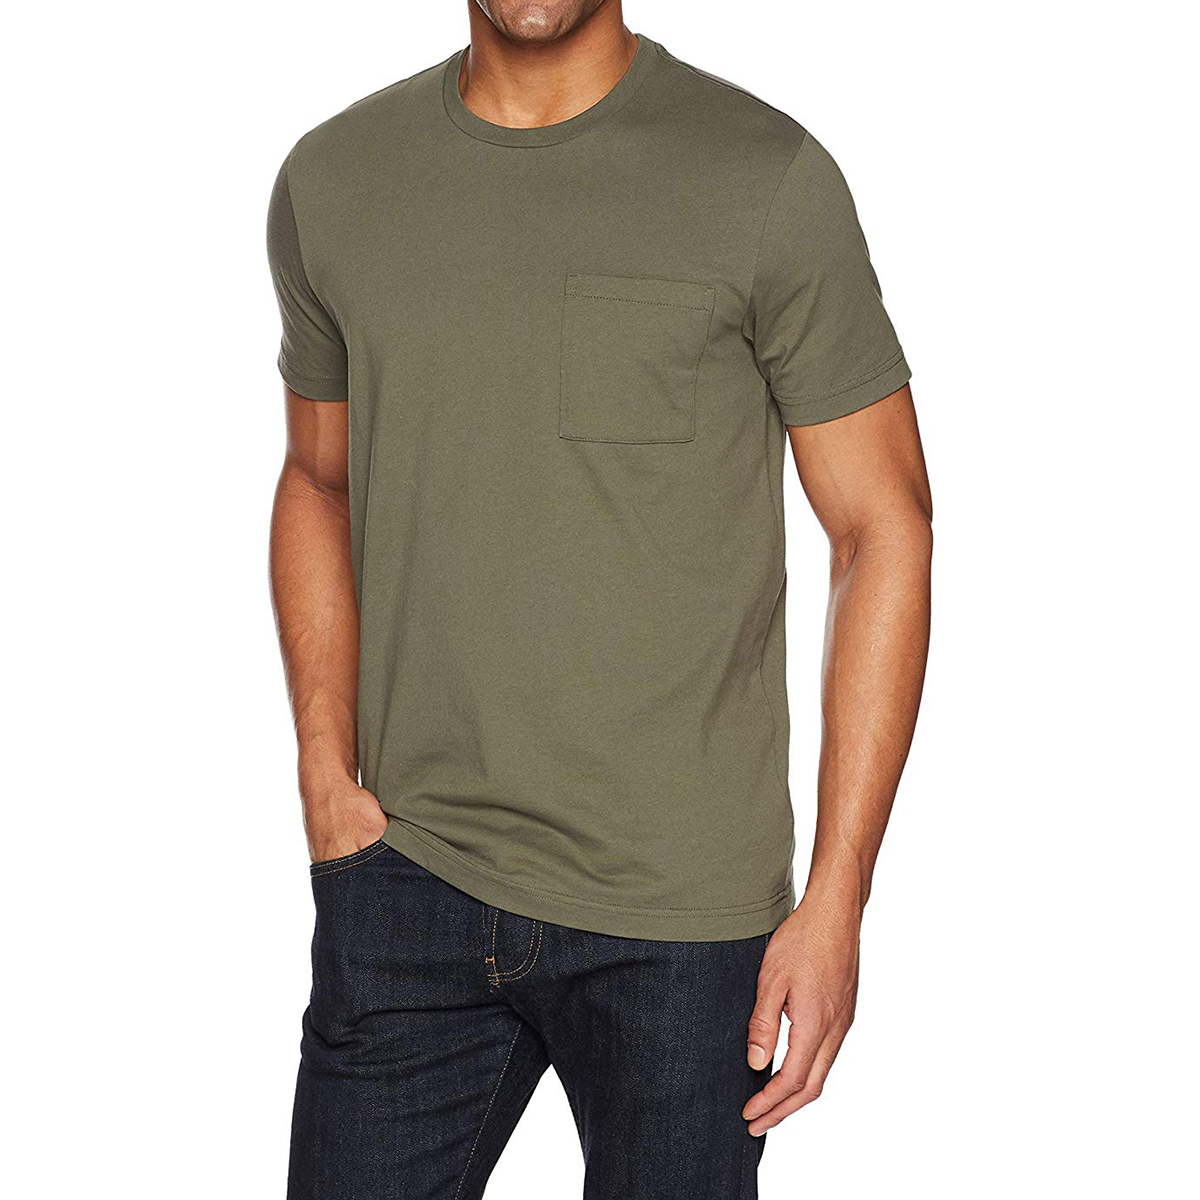 The Pocket T-Shirt: Goodthreads Men's Short Sleeve Crewneck Cotton T-Shirt